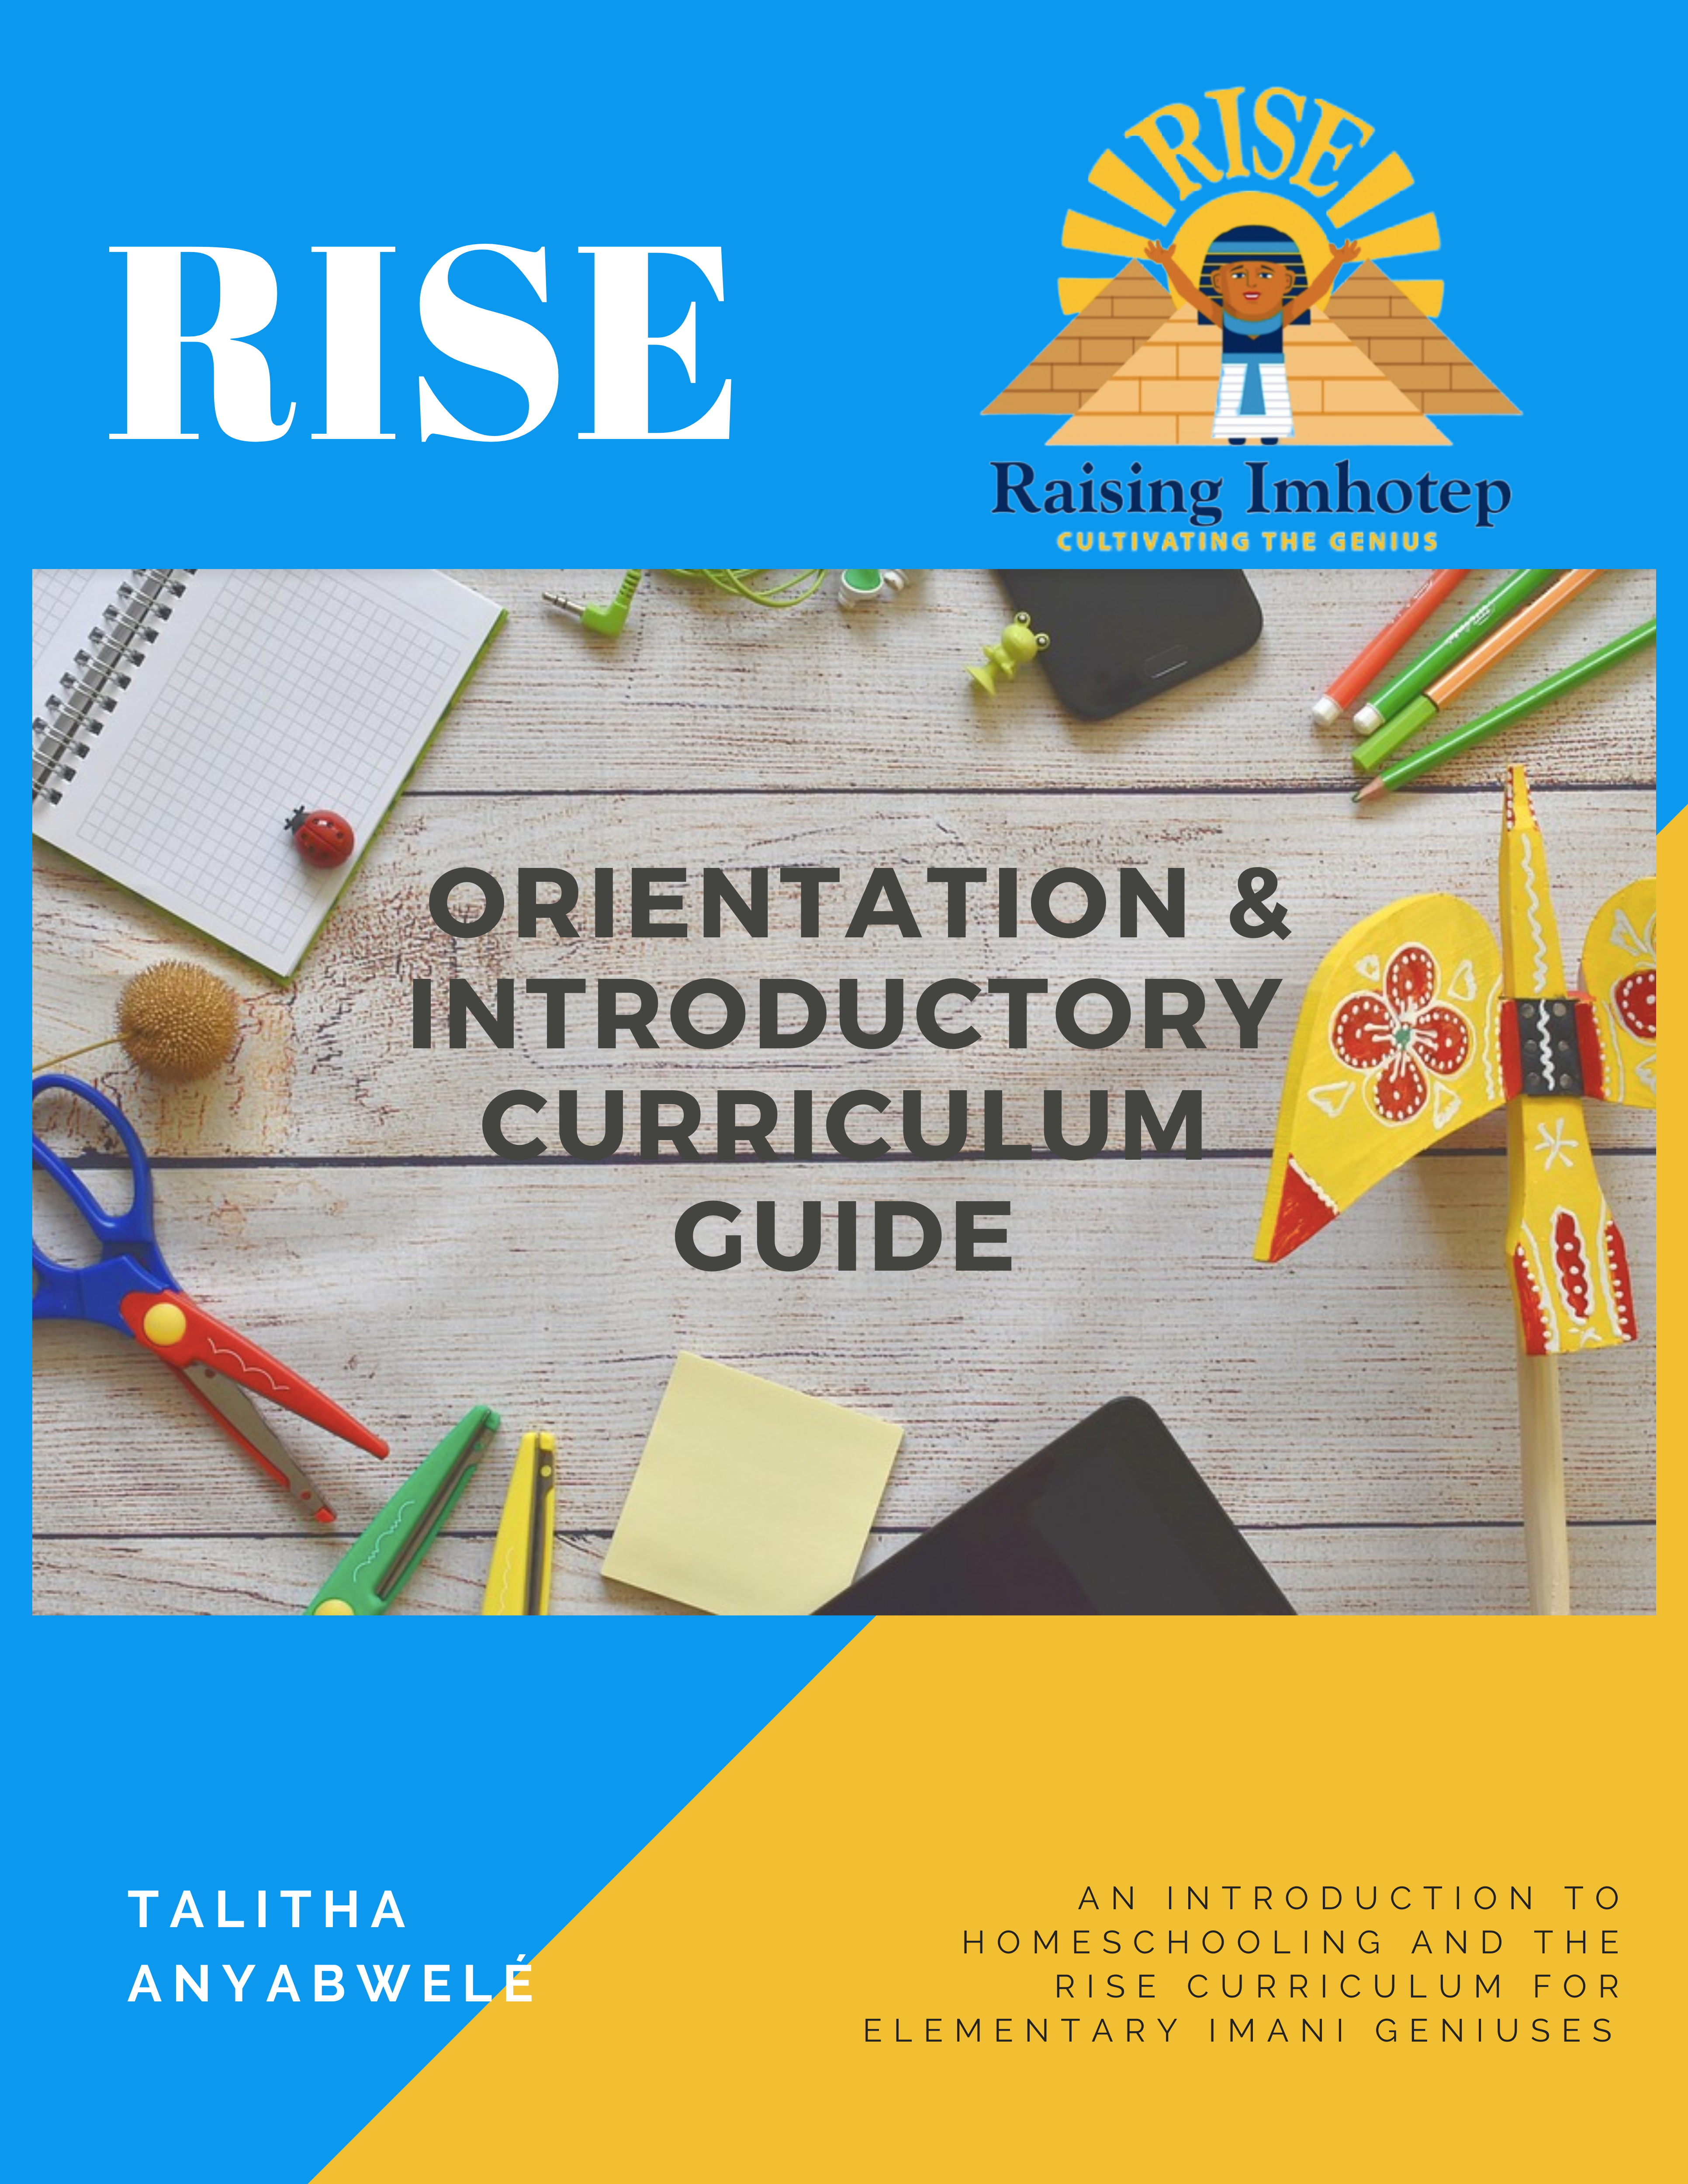 Orientation & Introductory Curriculum Guide (Pre-K – 5th Grade)